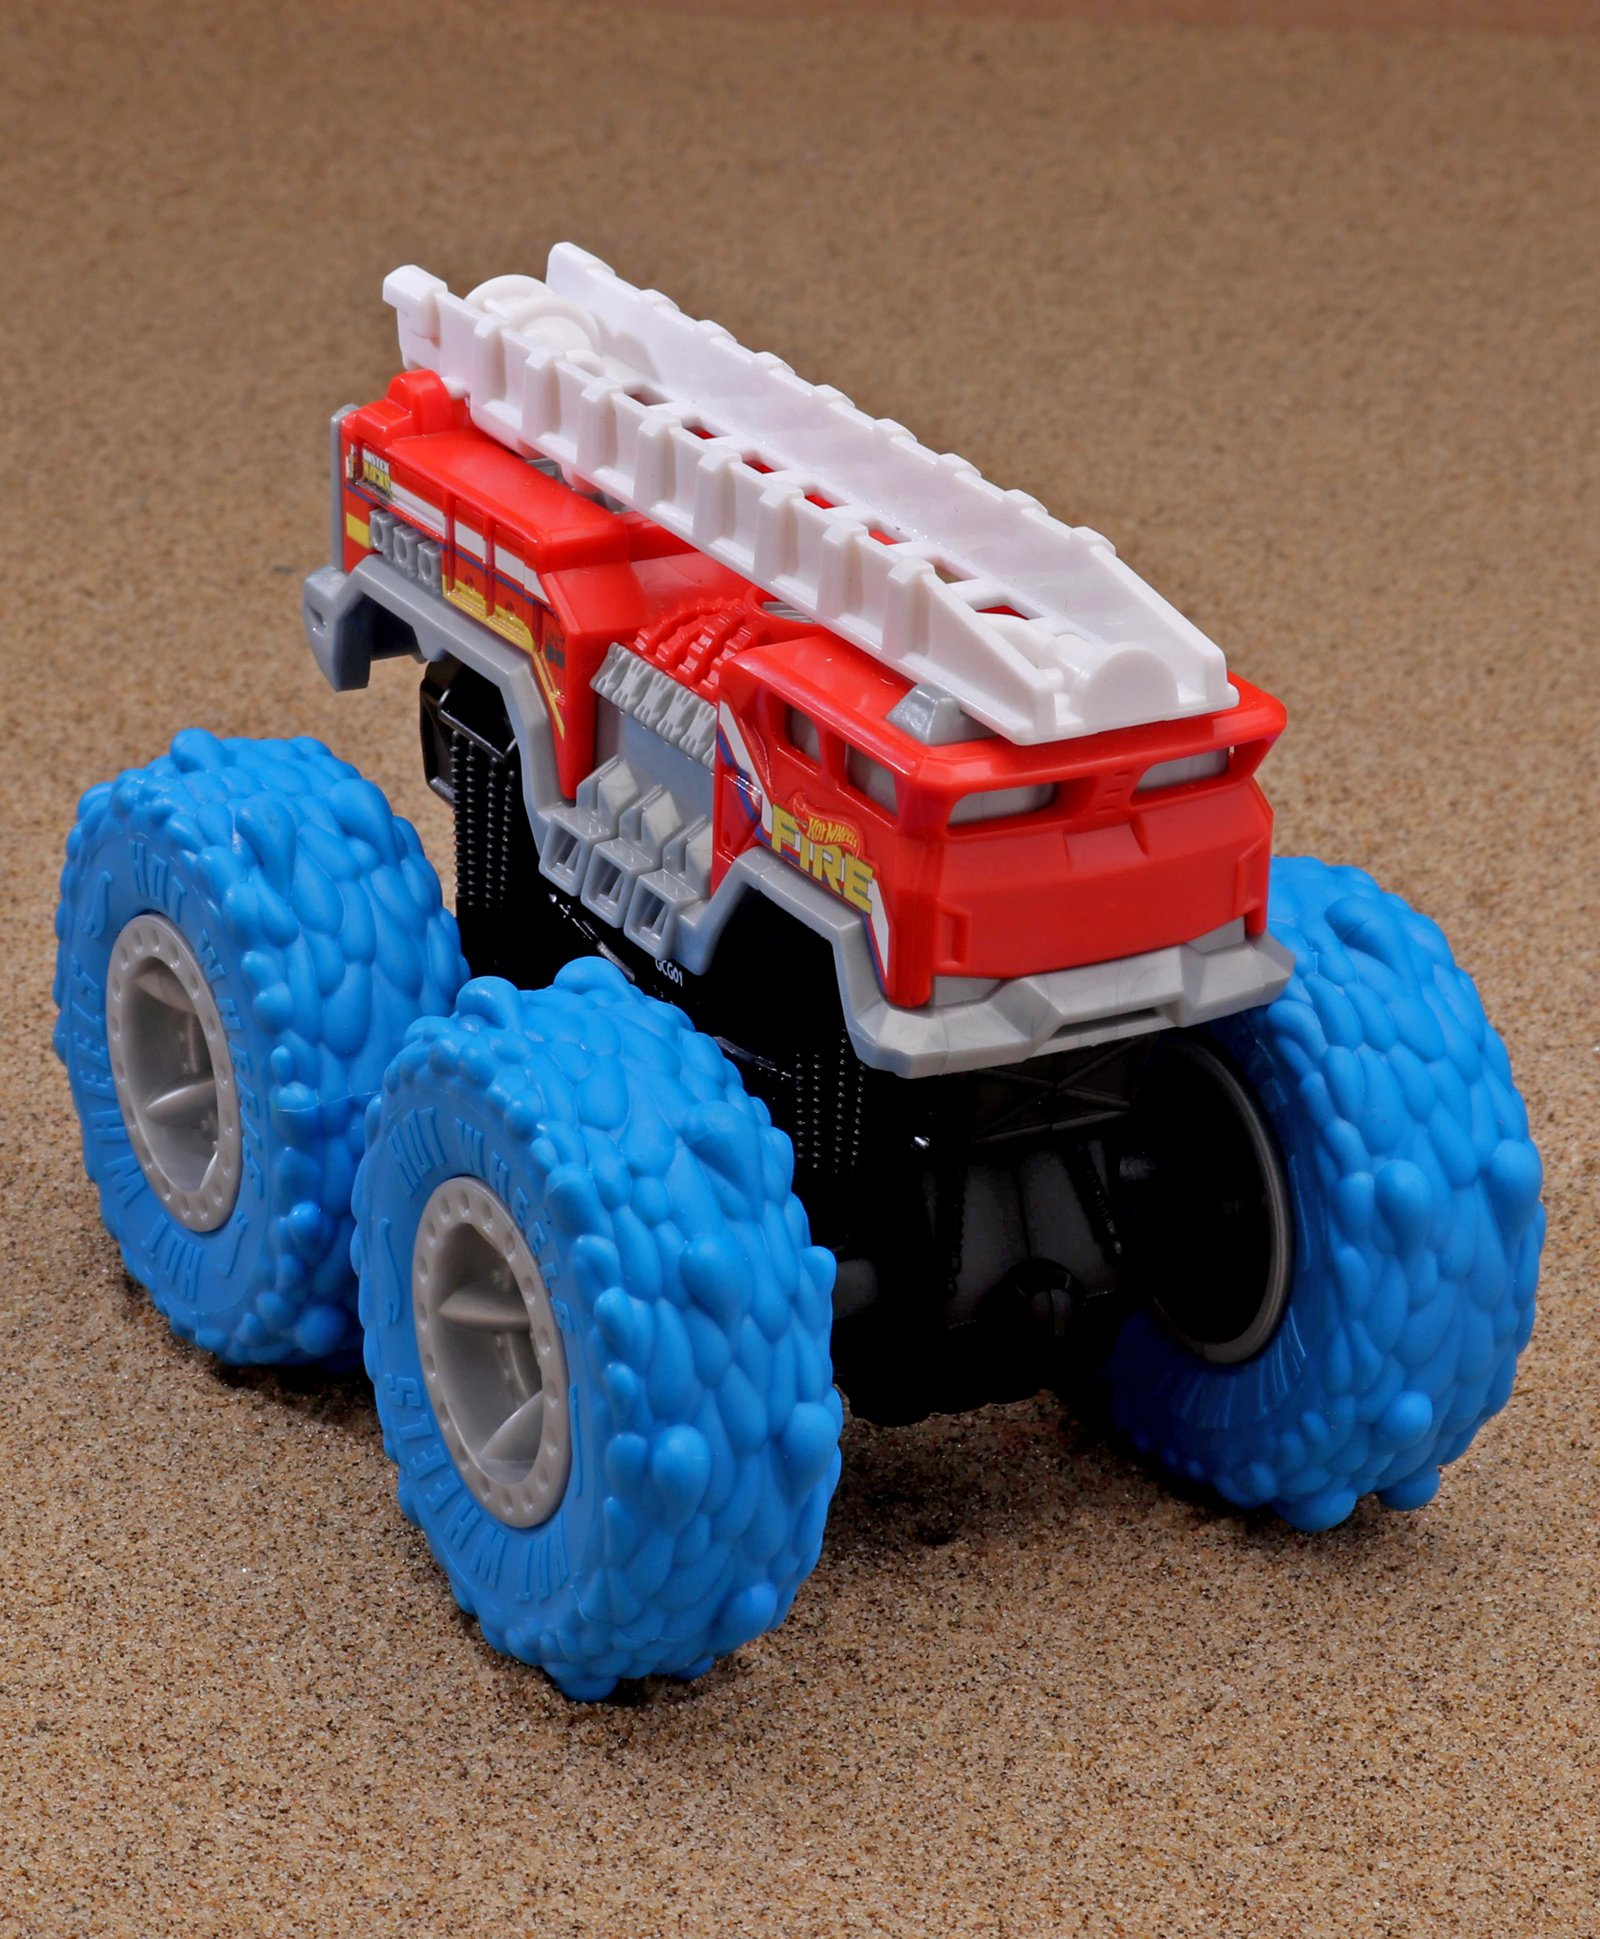 Hot Wheels 5 Alarm Wrecking Wheels Monster Truck Blue For 3 8 Years Online India Buy At Firstcry Com 3240394